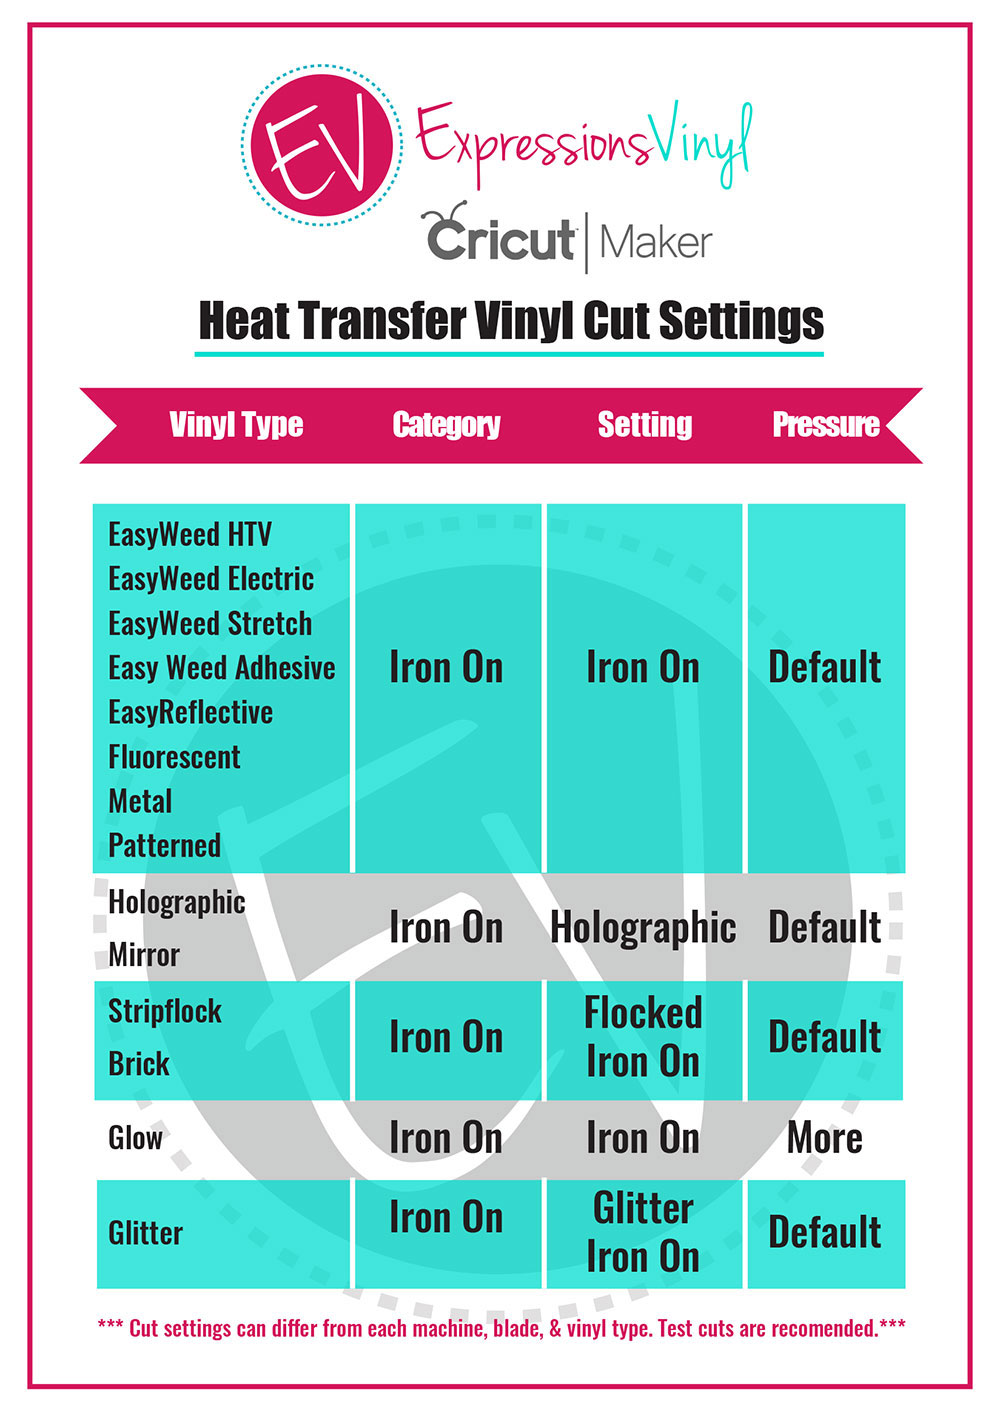 image about How to Use Printable Heat Transfer Vinyl Cricut known as Product Configurations